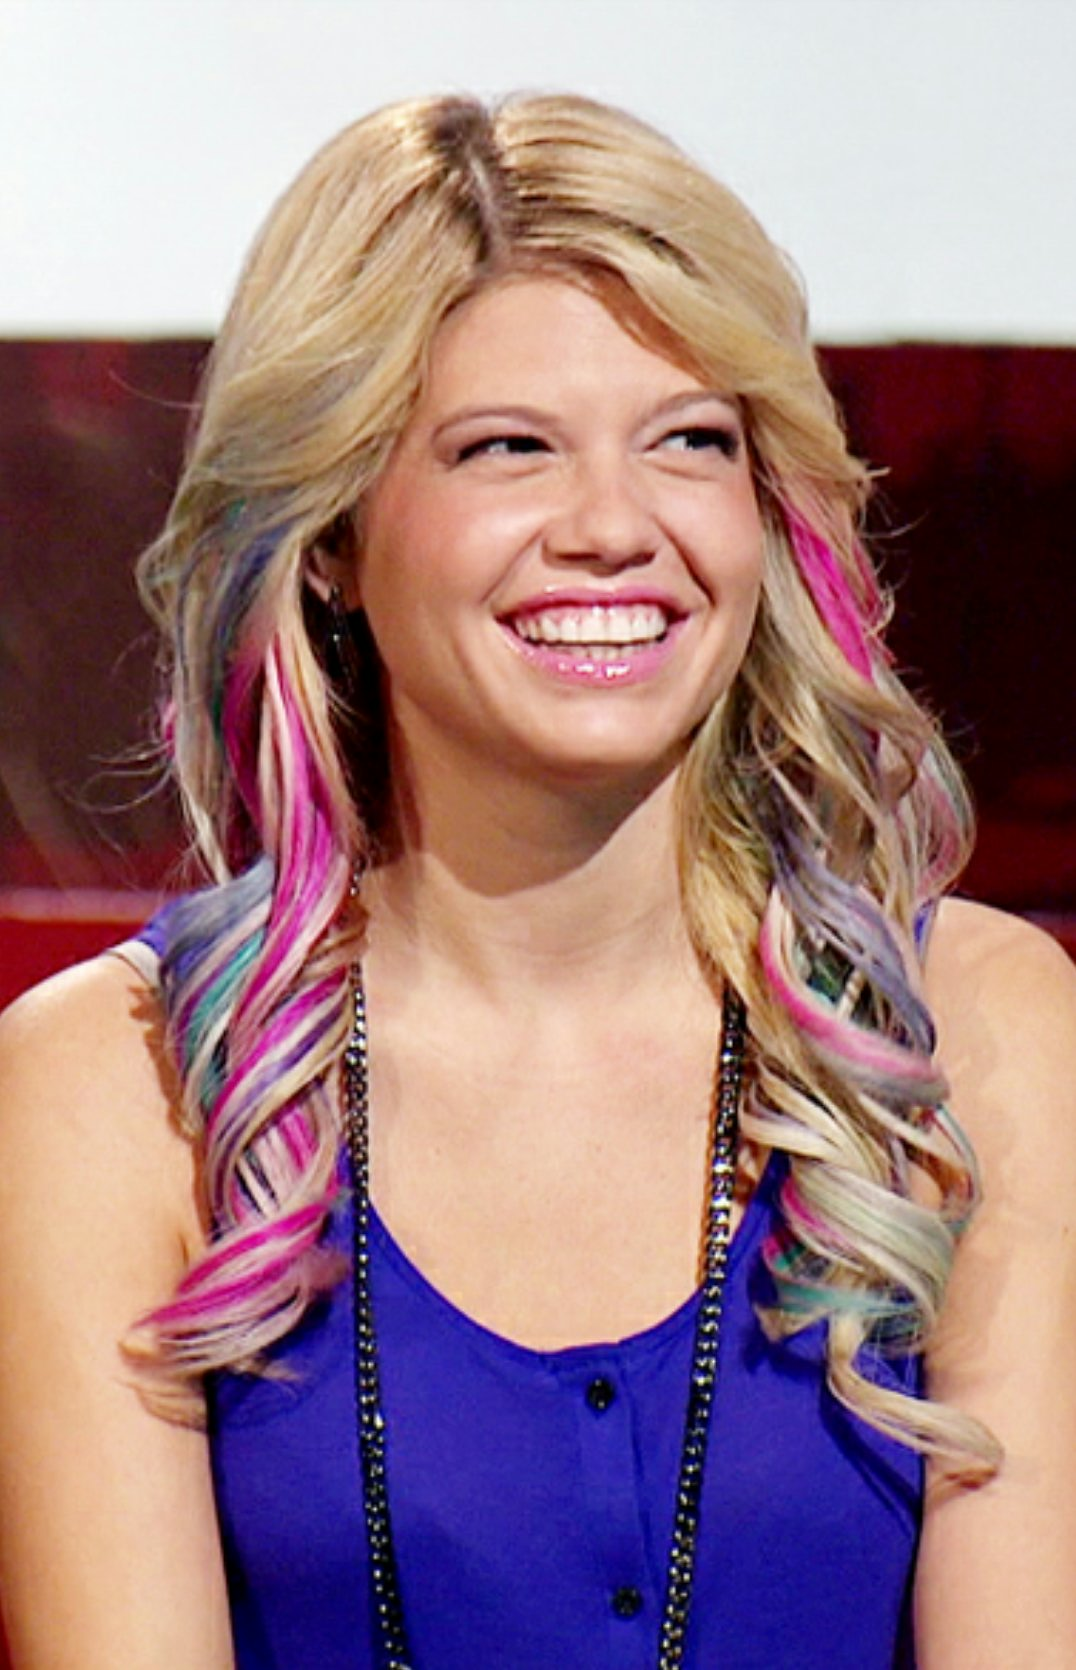 Eat My Cookie Chanel West Coast